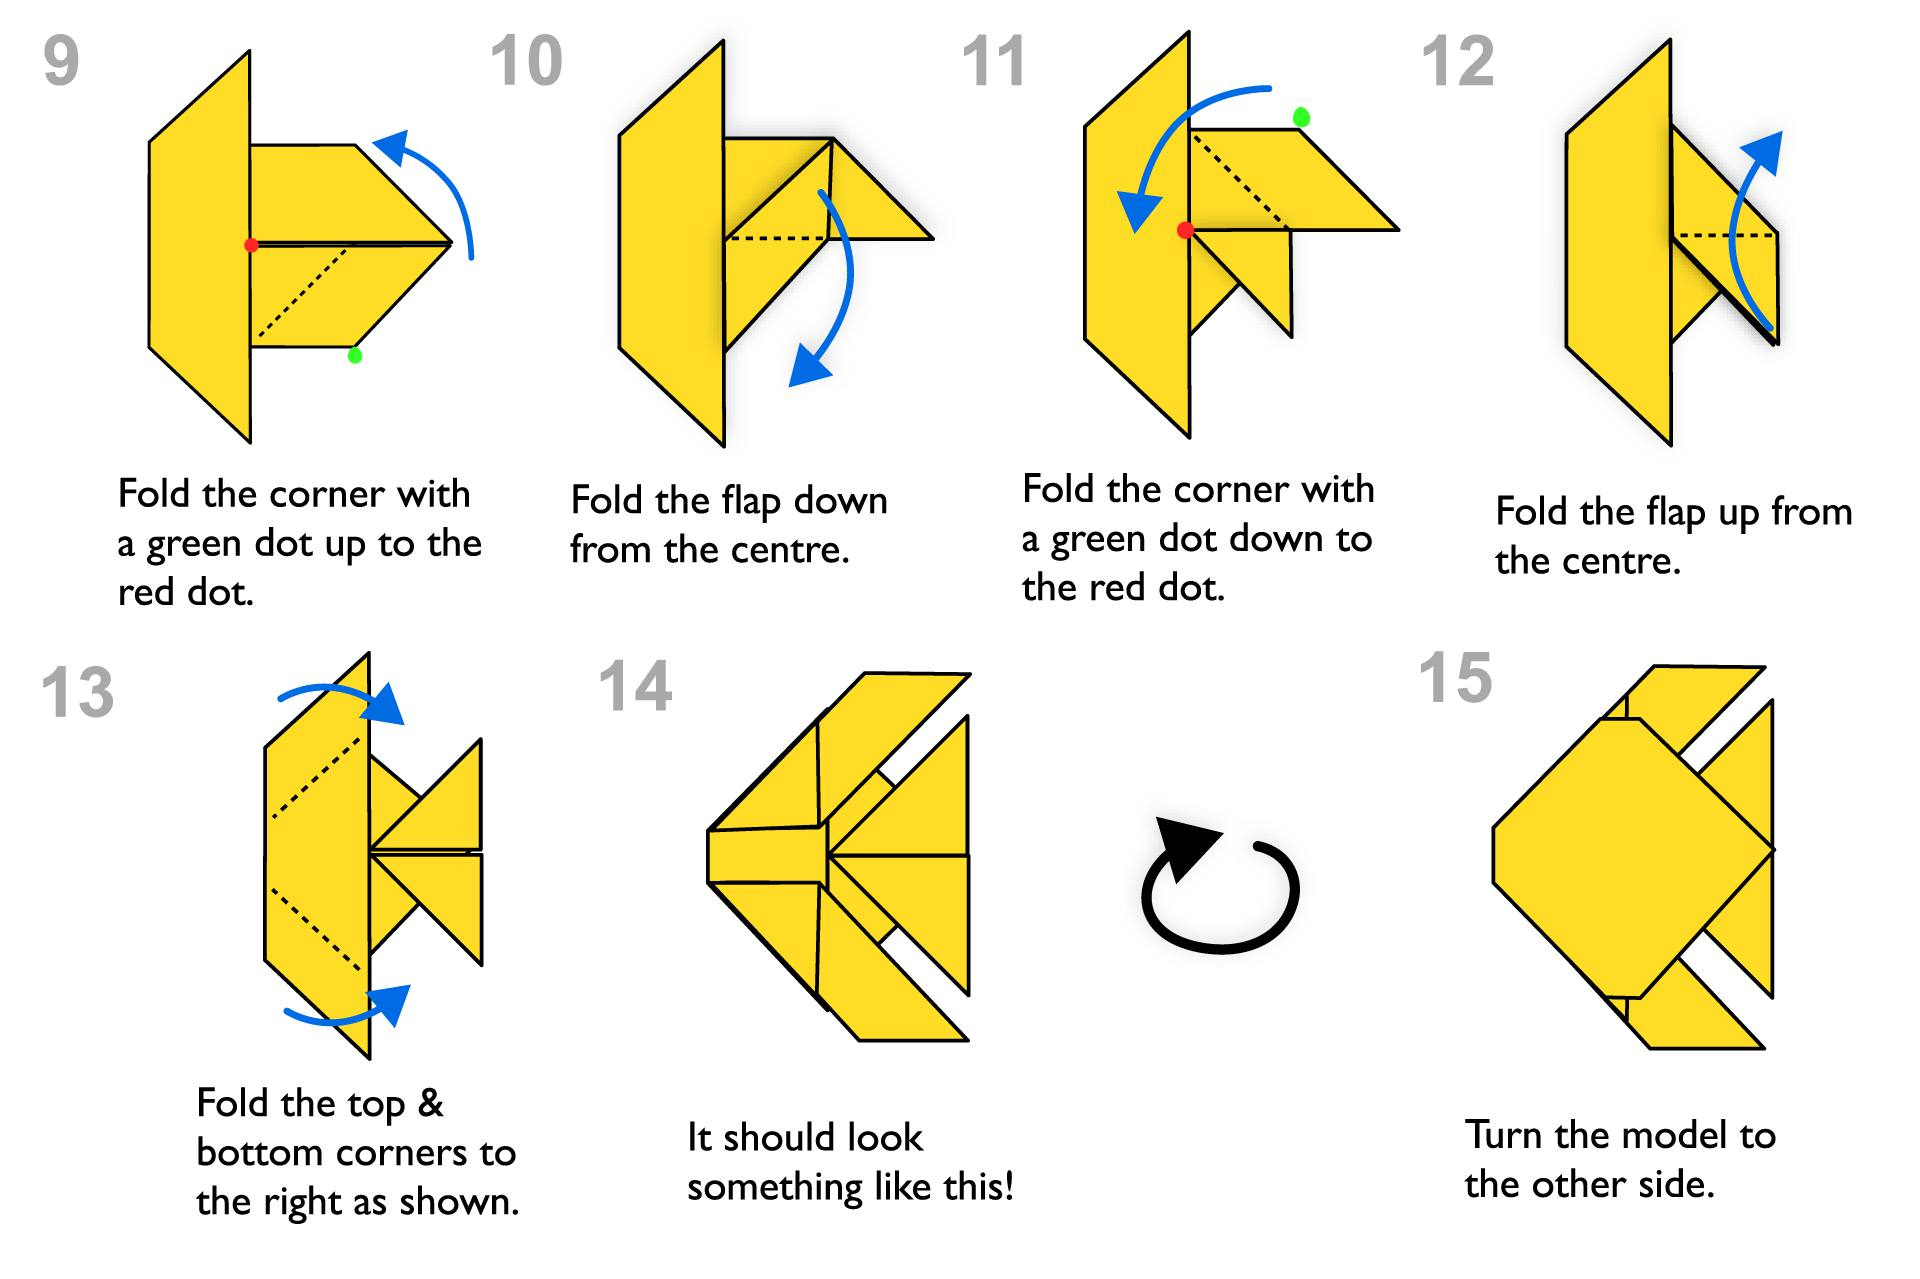 origami eagle instructions diagram 2001 jeep wrangler ignition wiring 84 43 steps for kids traditional fish